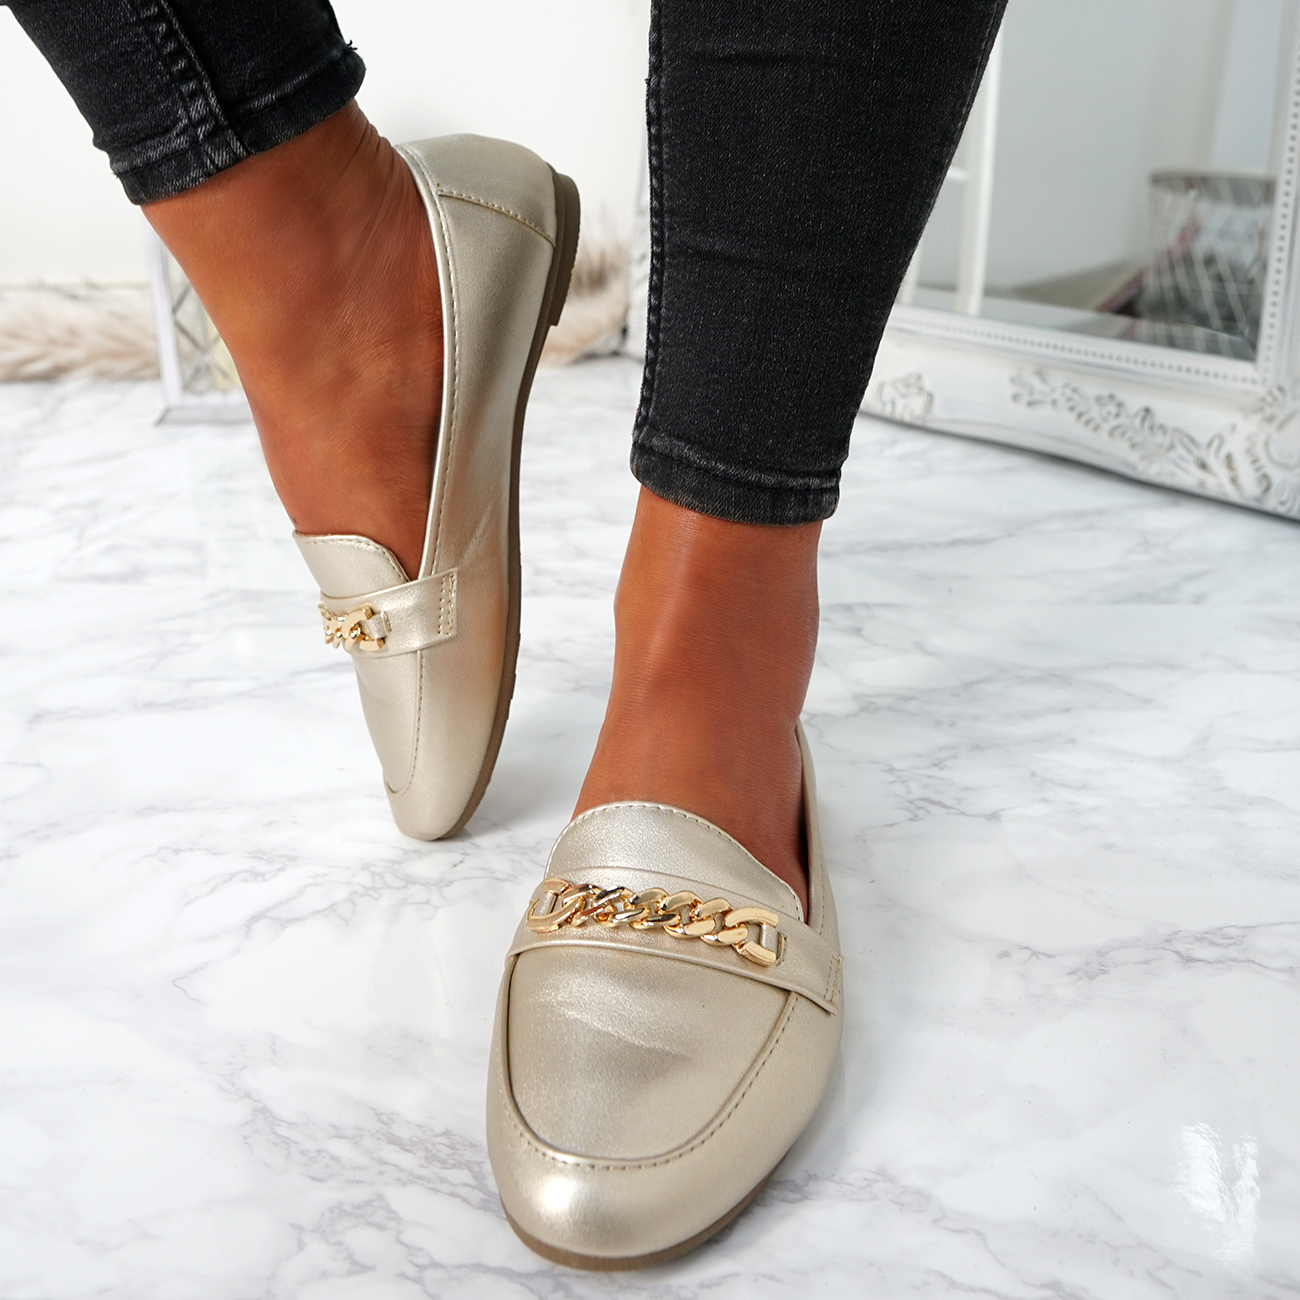 WOMENS-LADIES-CHAIN-SLIP-ON-BALLERINA-LOAFERS-BALLET-DOLLY-PUMPS-SHOES-SIZE thumbnail 28